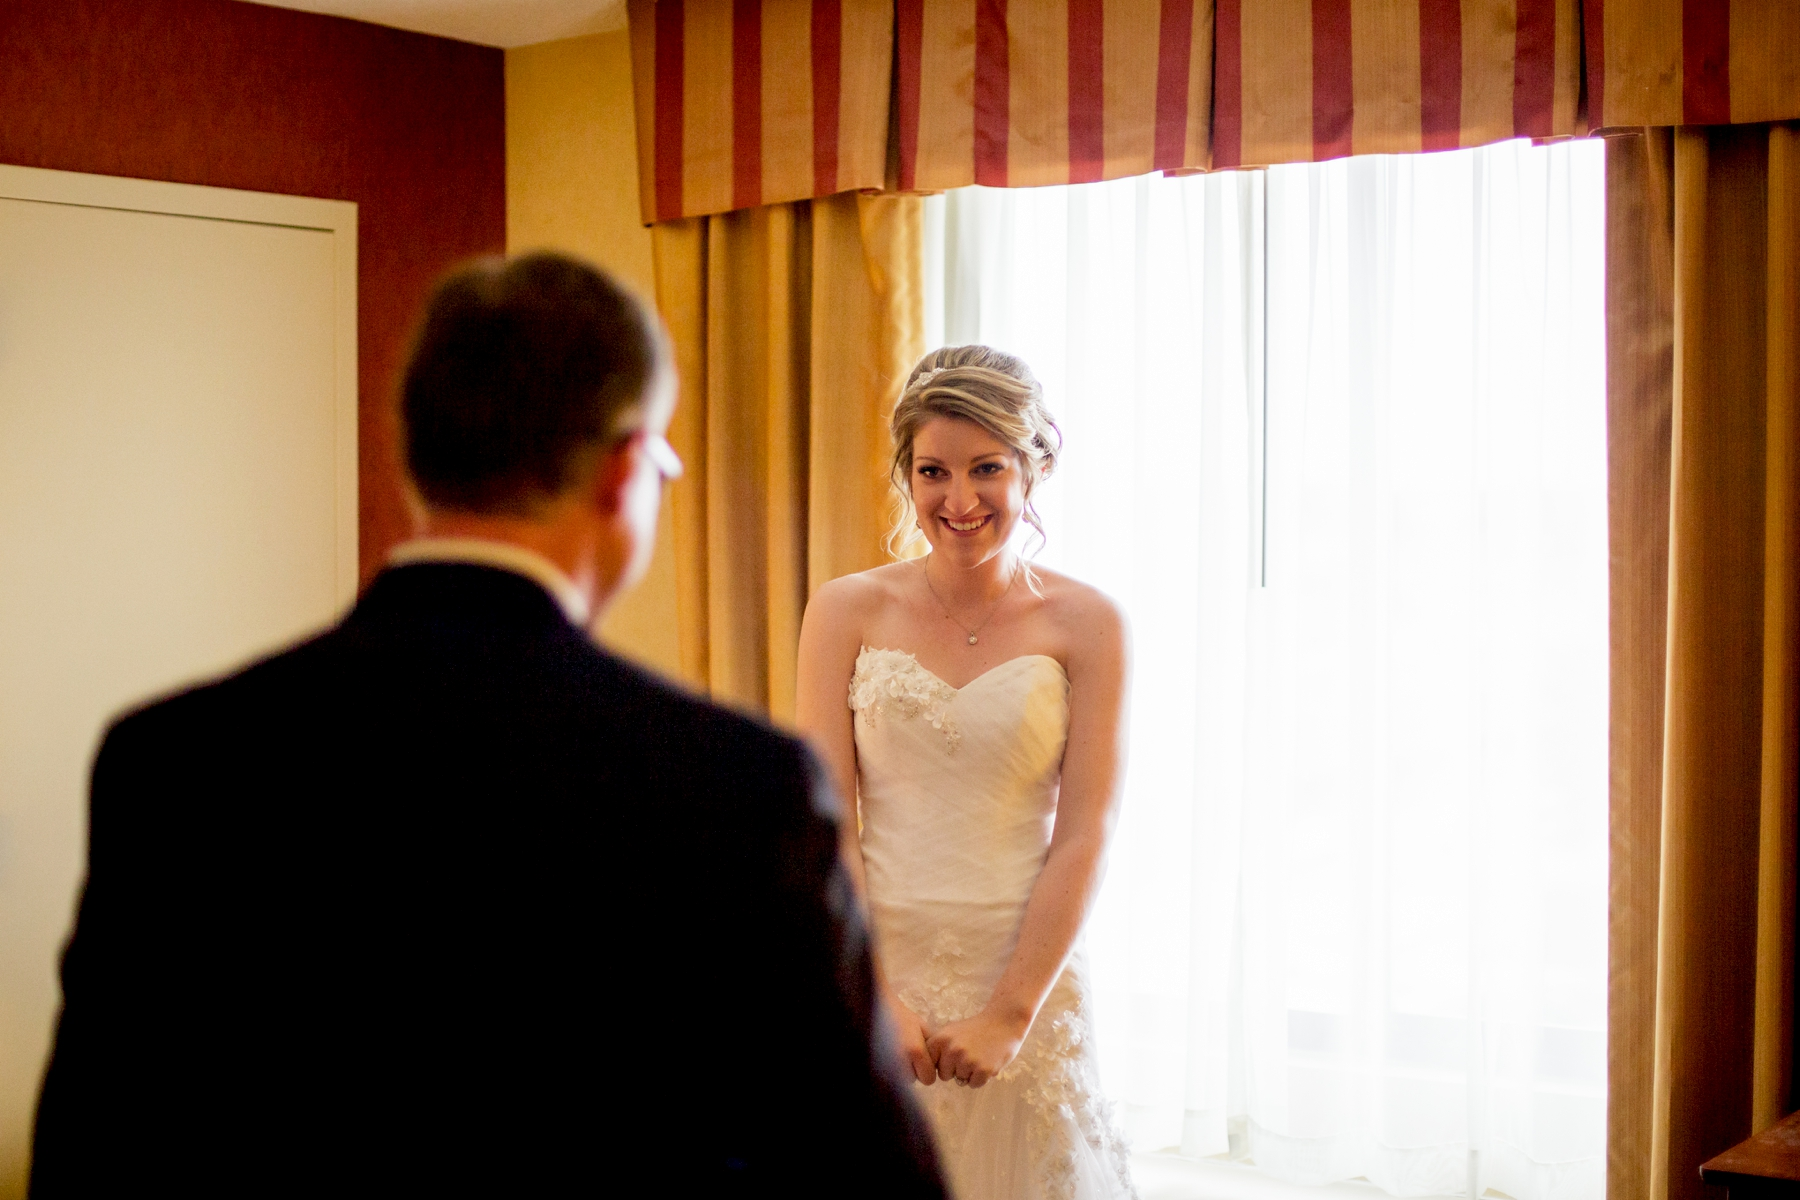 Brandon_Shafer_Photography_Kristen_Corey_Downtown_Grand_Rapids_Fall_Wedding0013.JPG